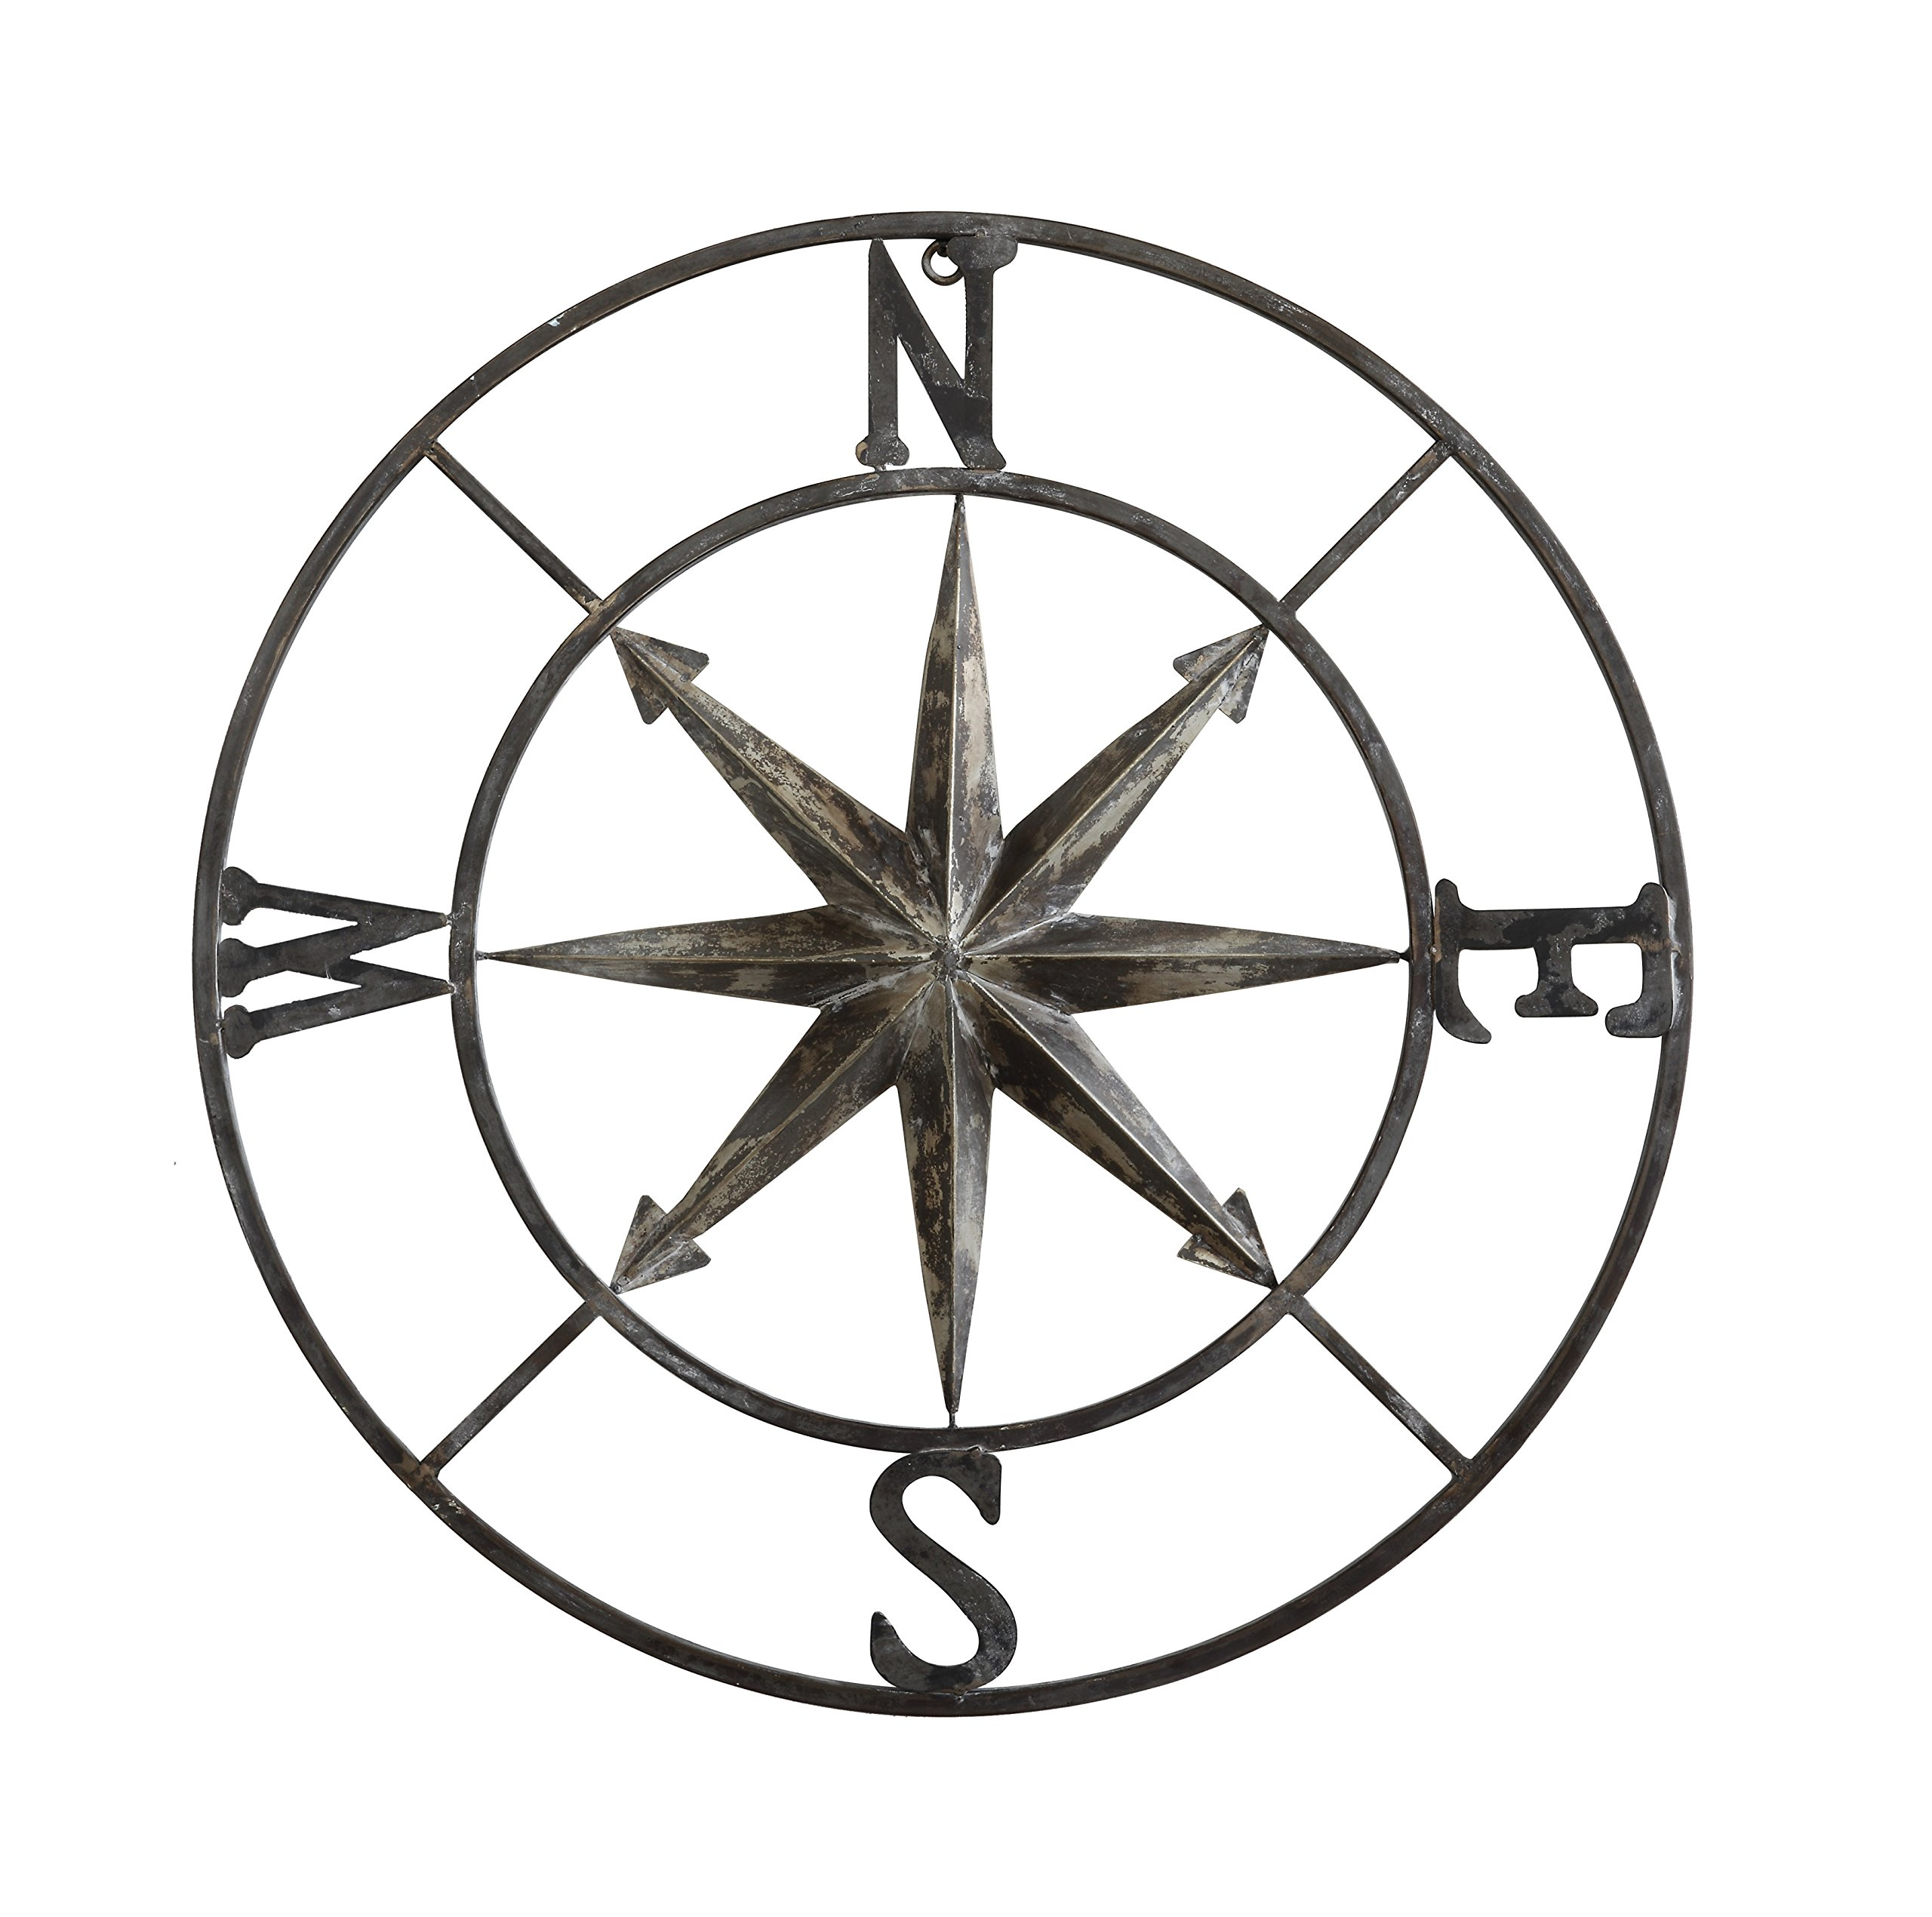 Creative Co-op Decorative Round Metal Compass Wall Décor, 30'', Black by Creative Co-op